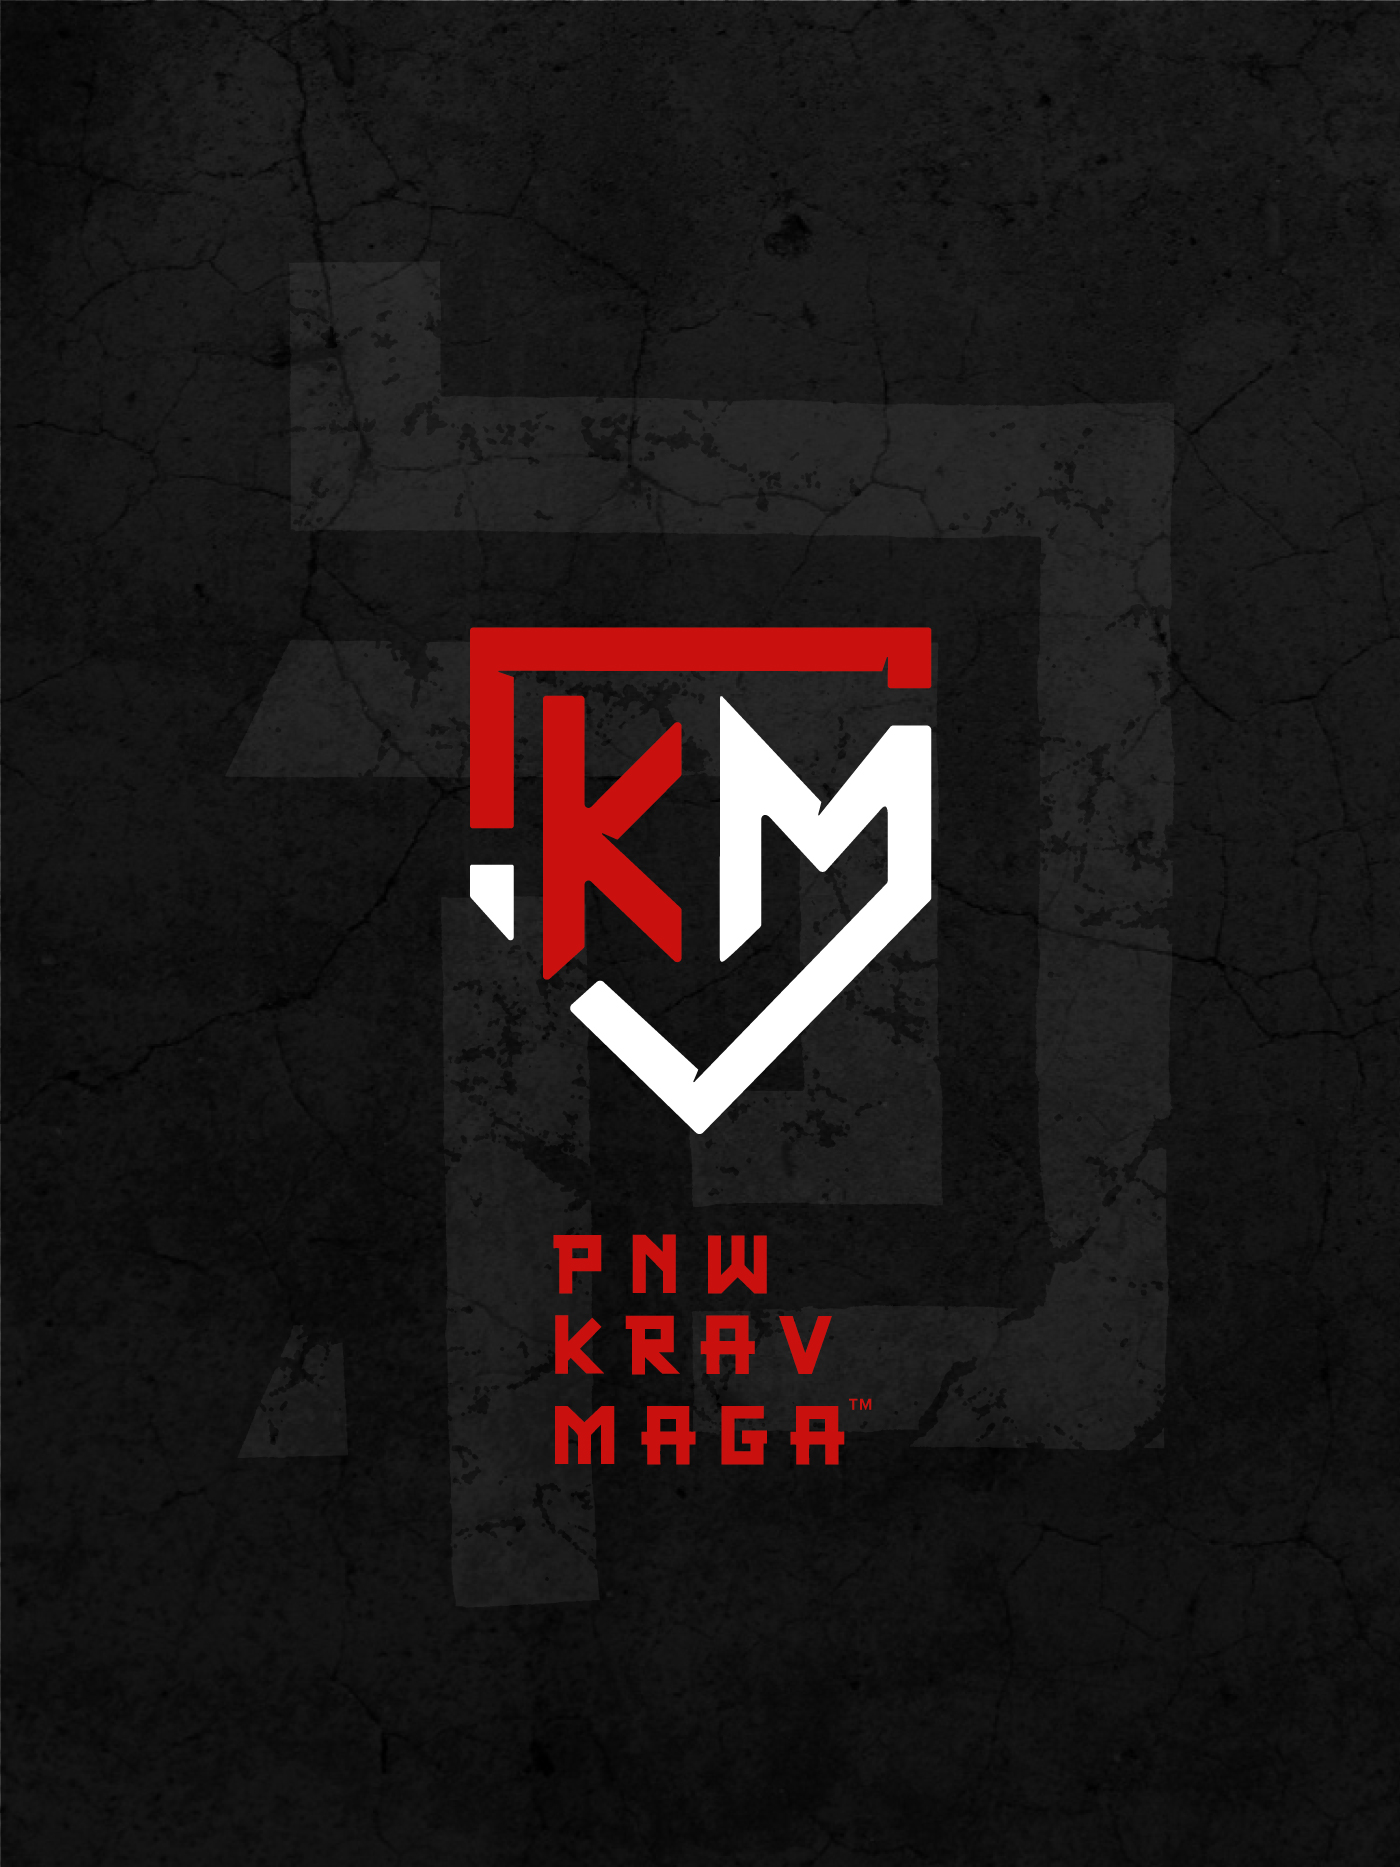 Pacific Northwest Krav Maga No Classes Pnw Krav Maga